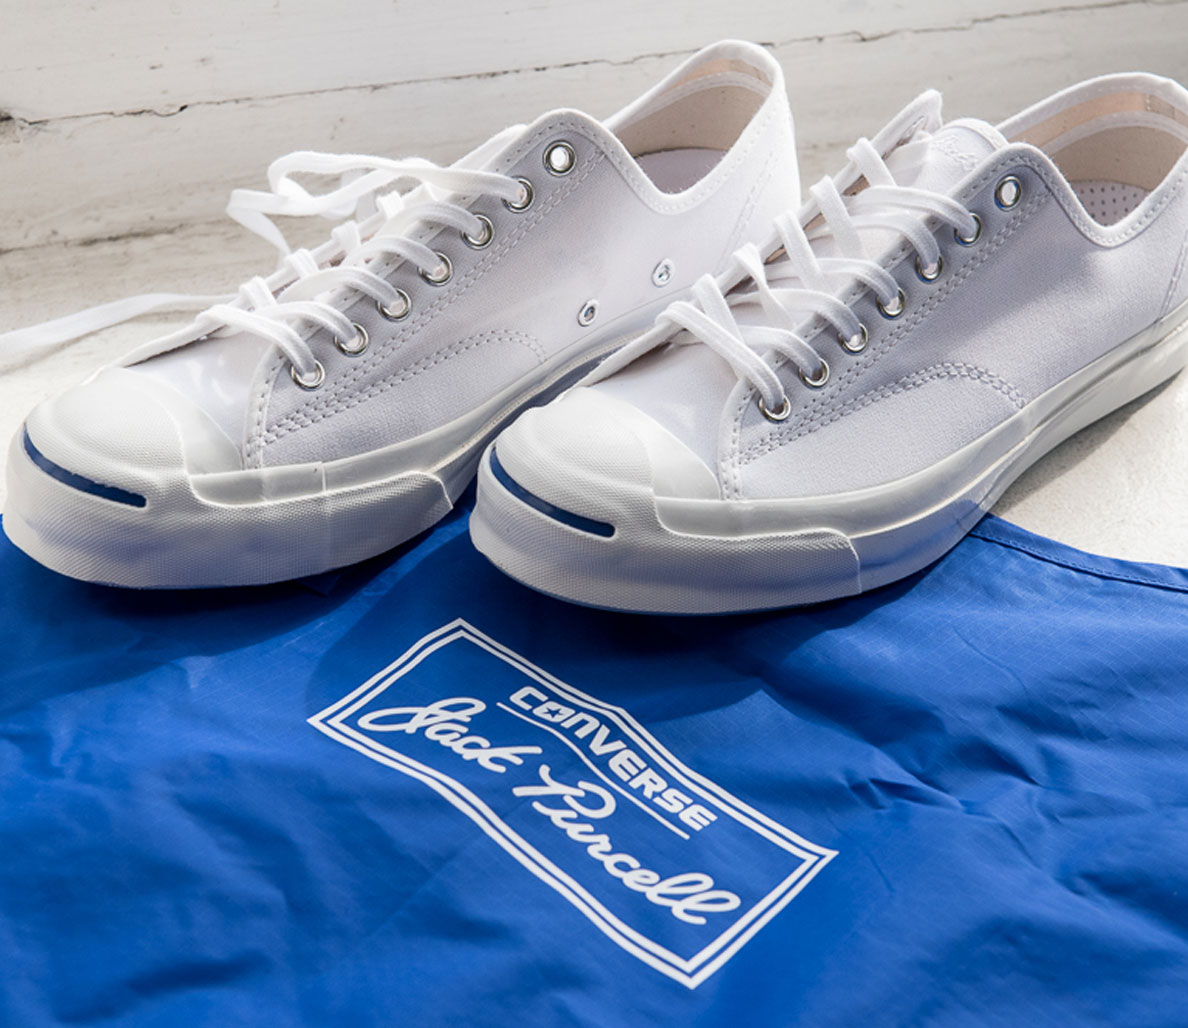 537aa41def6 Converse Debuts Jack Purcell Signature Sneaker